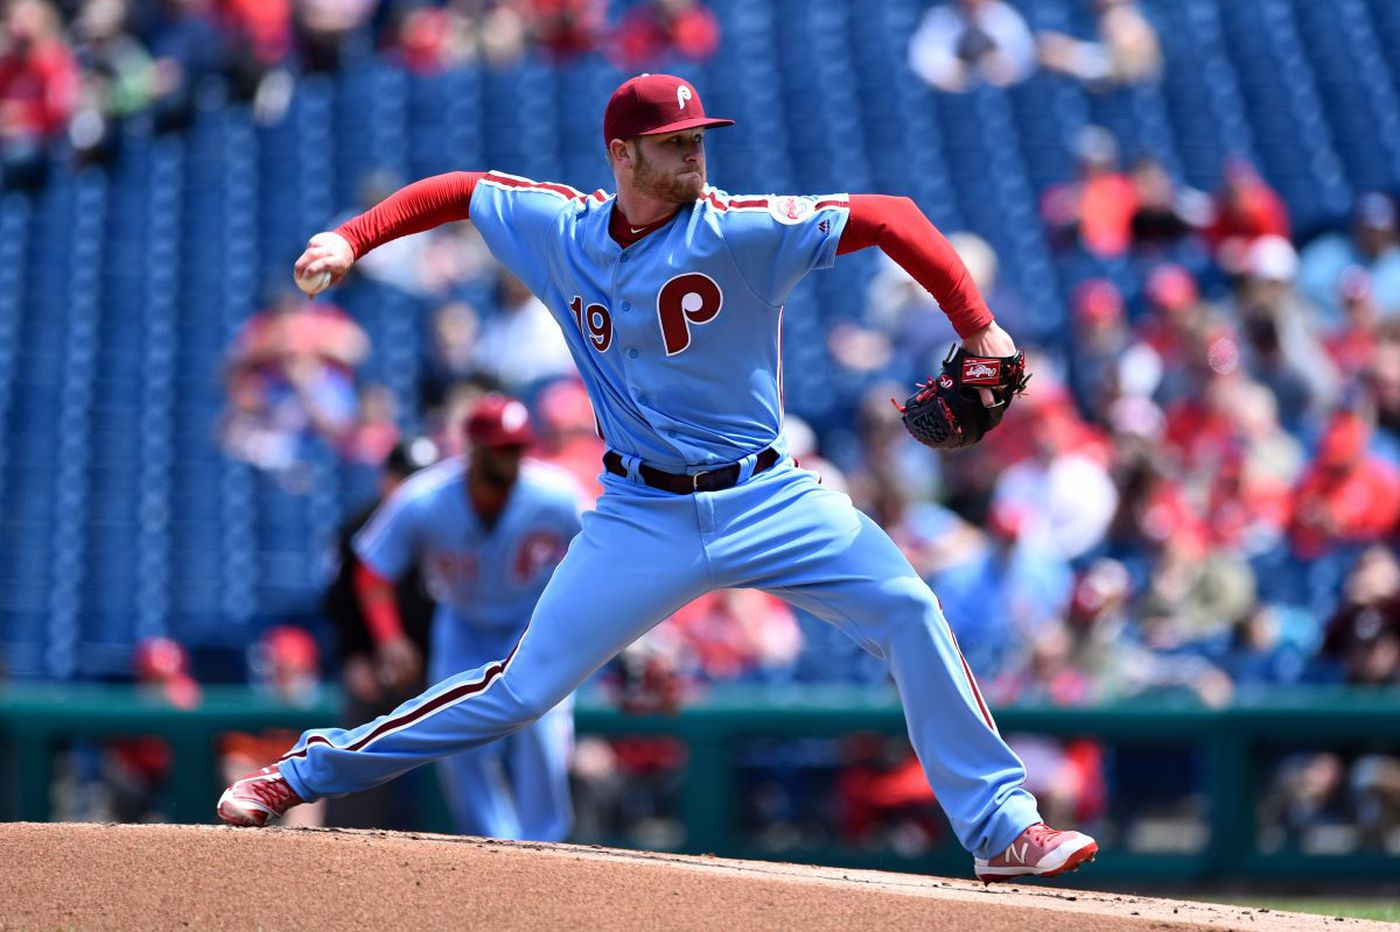 Phillies minor league report: Ben Lively's solid outing puts IronPigs back in win column